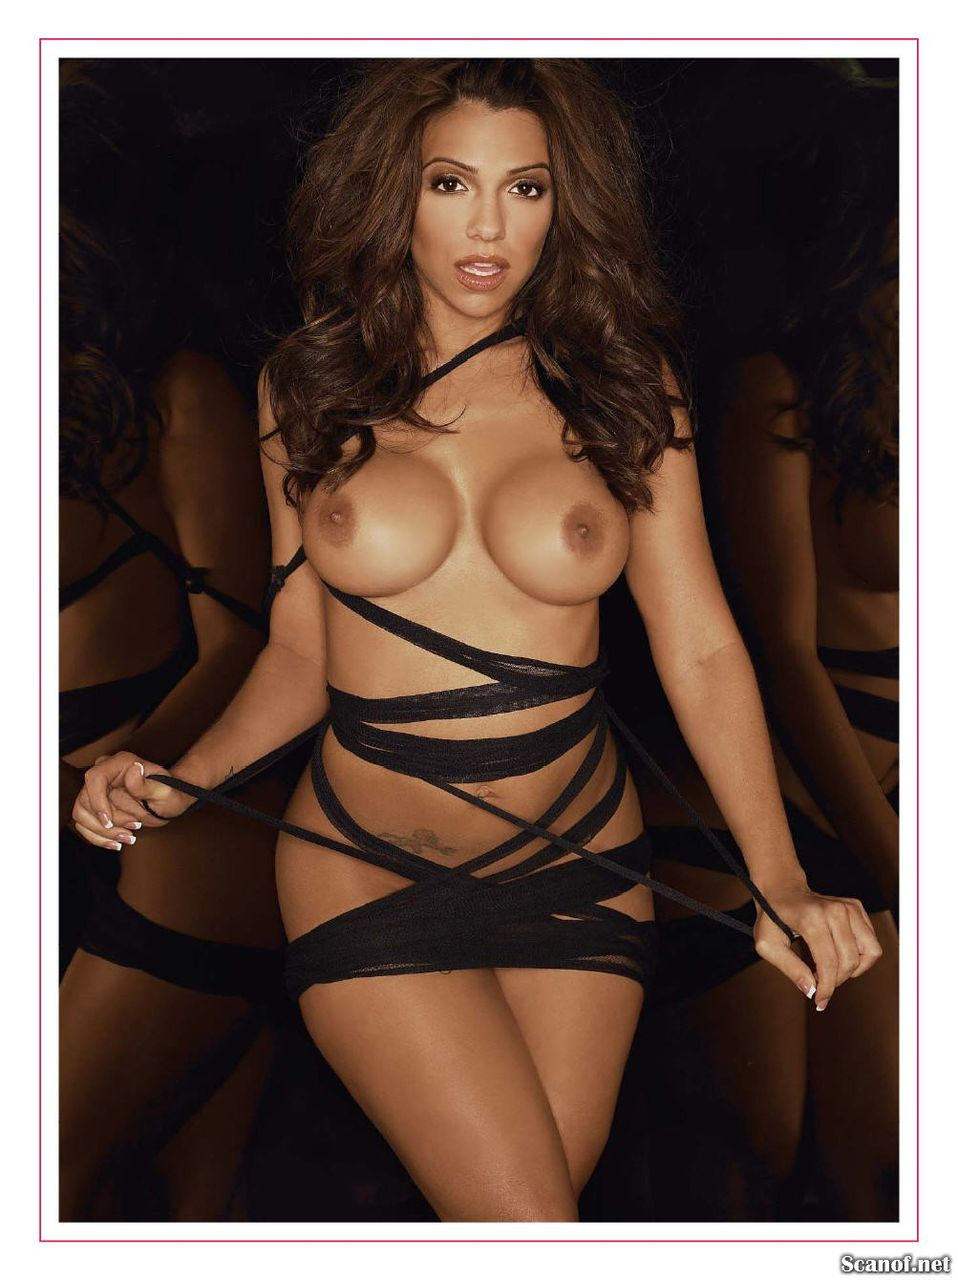 Nude vida guerra porn opinion you